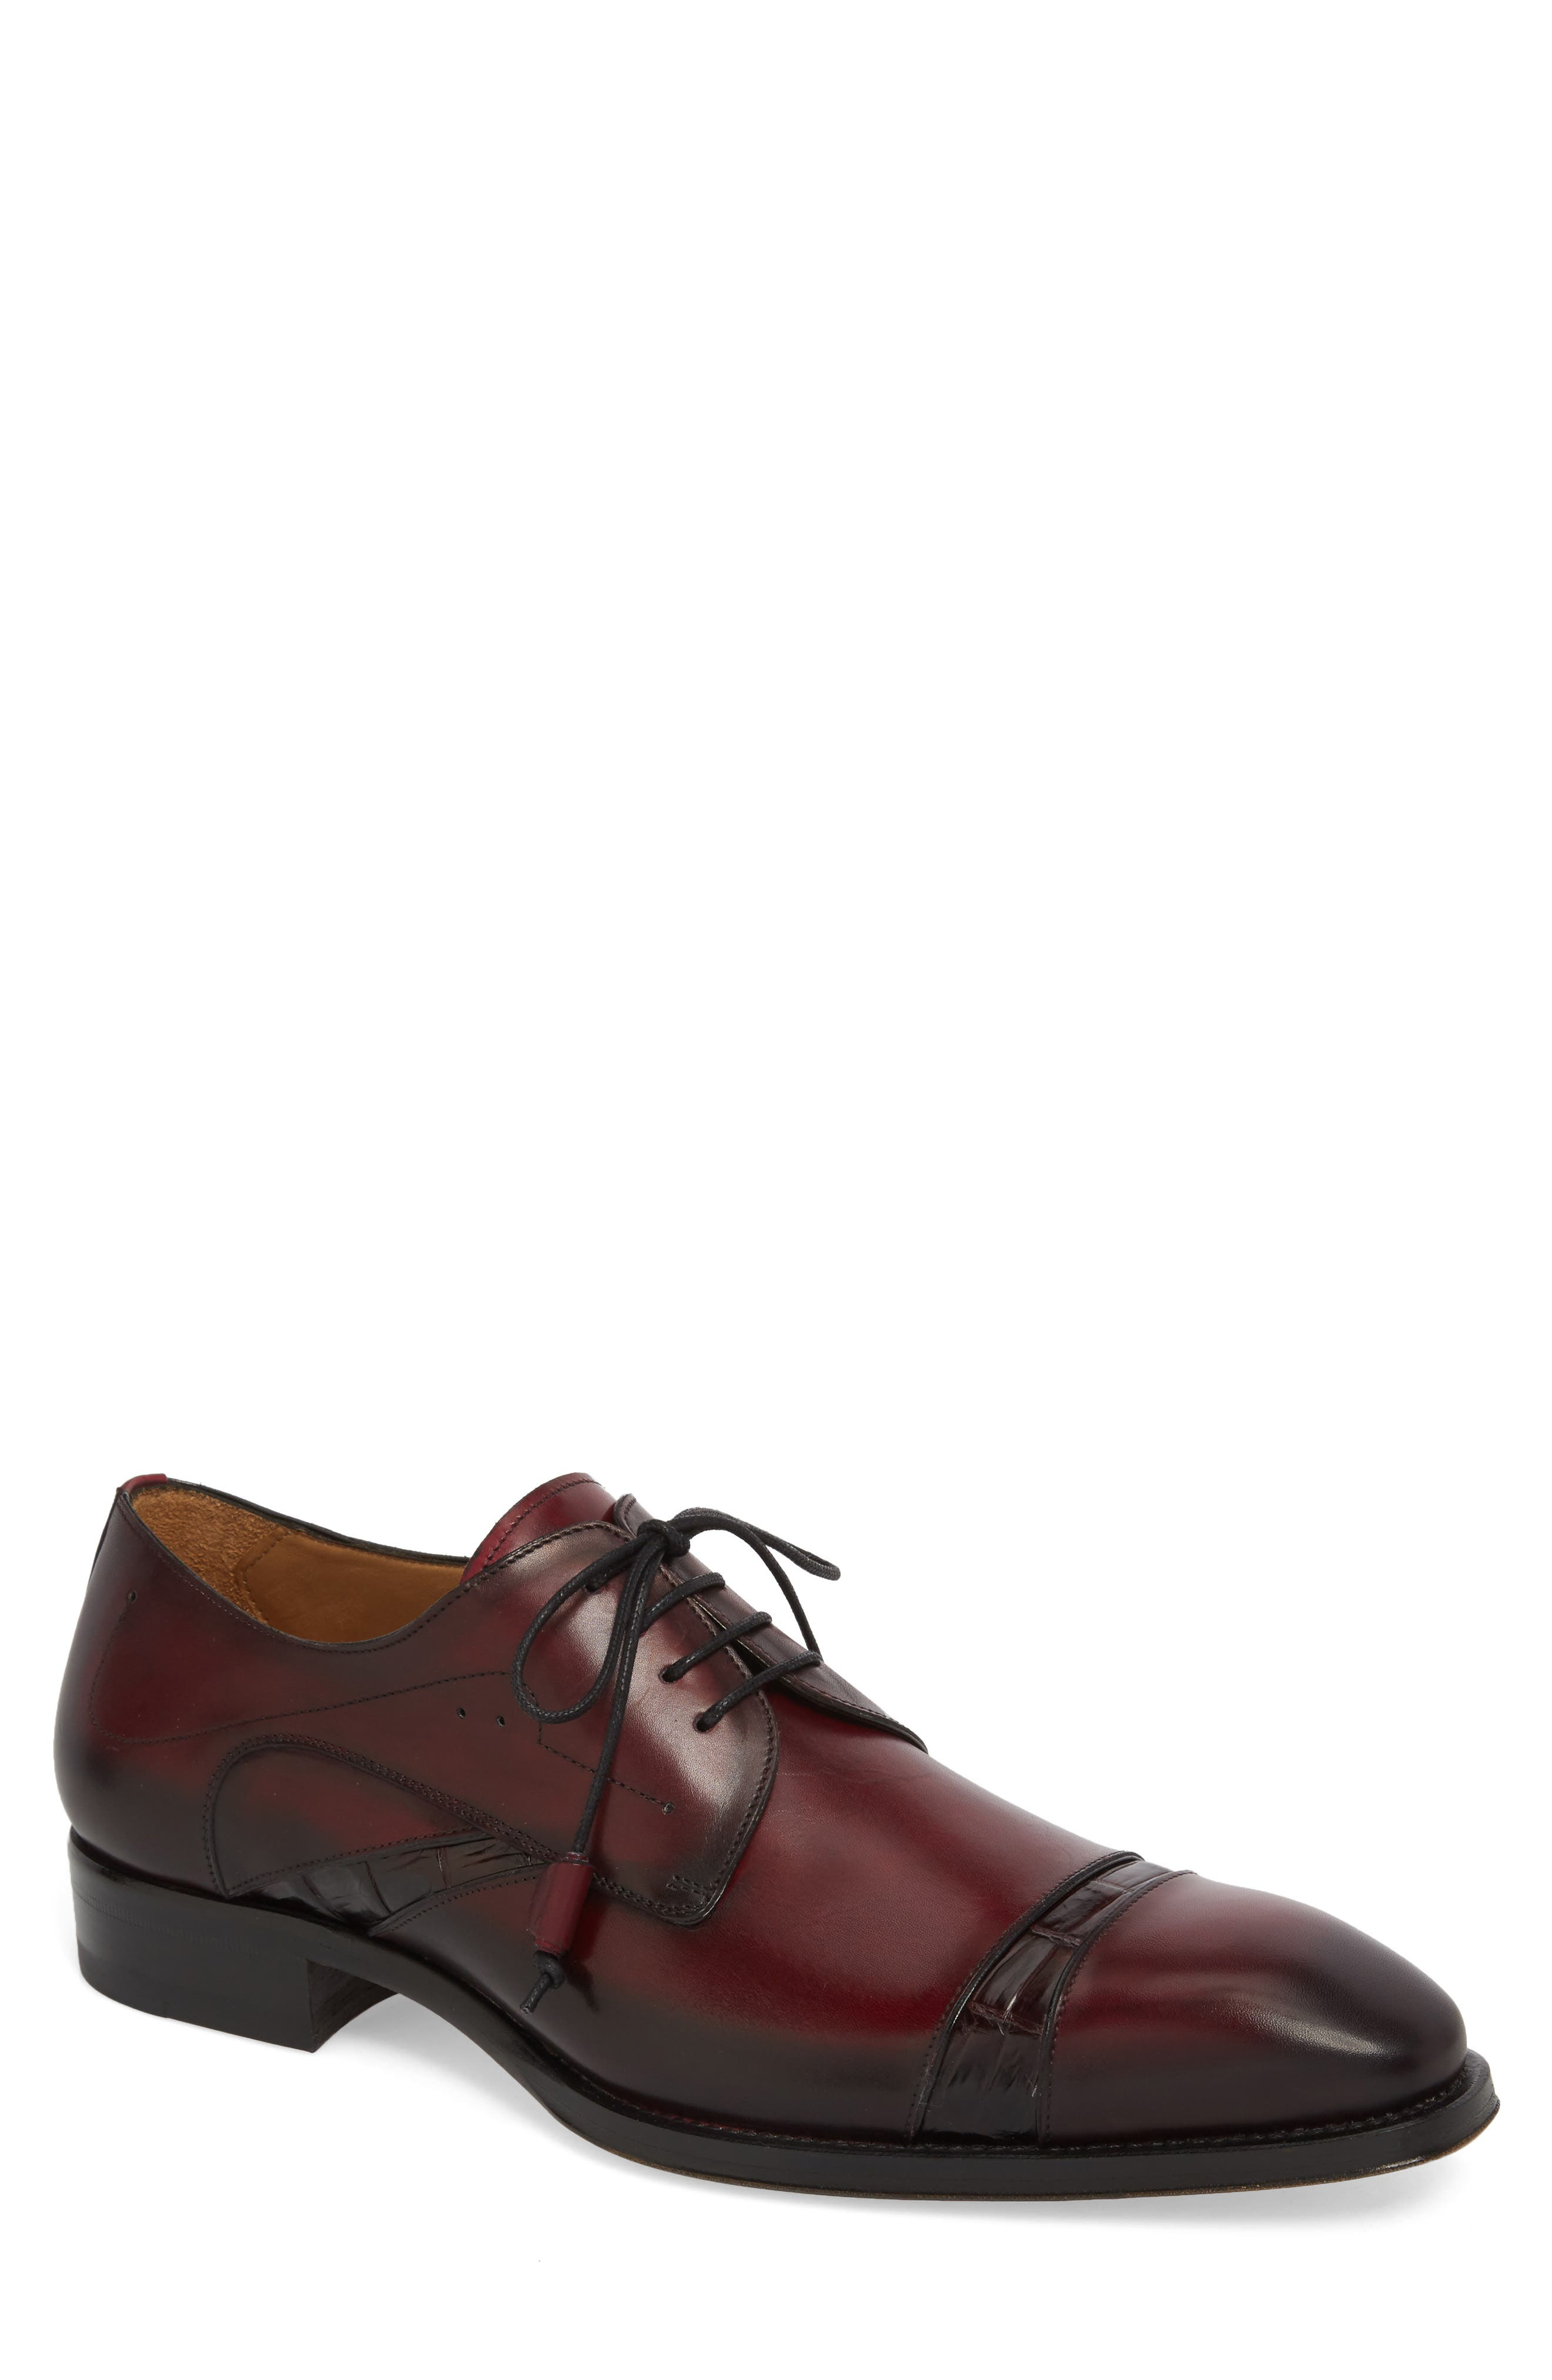 MEZLAN Nemesis Cap Toe Derby in Burgundy Leather